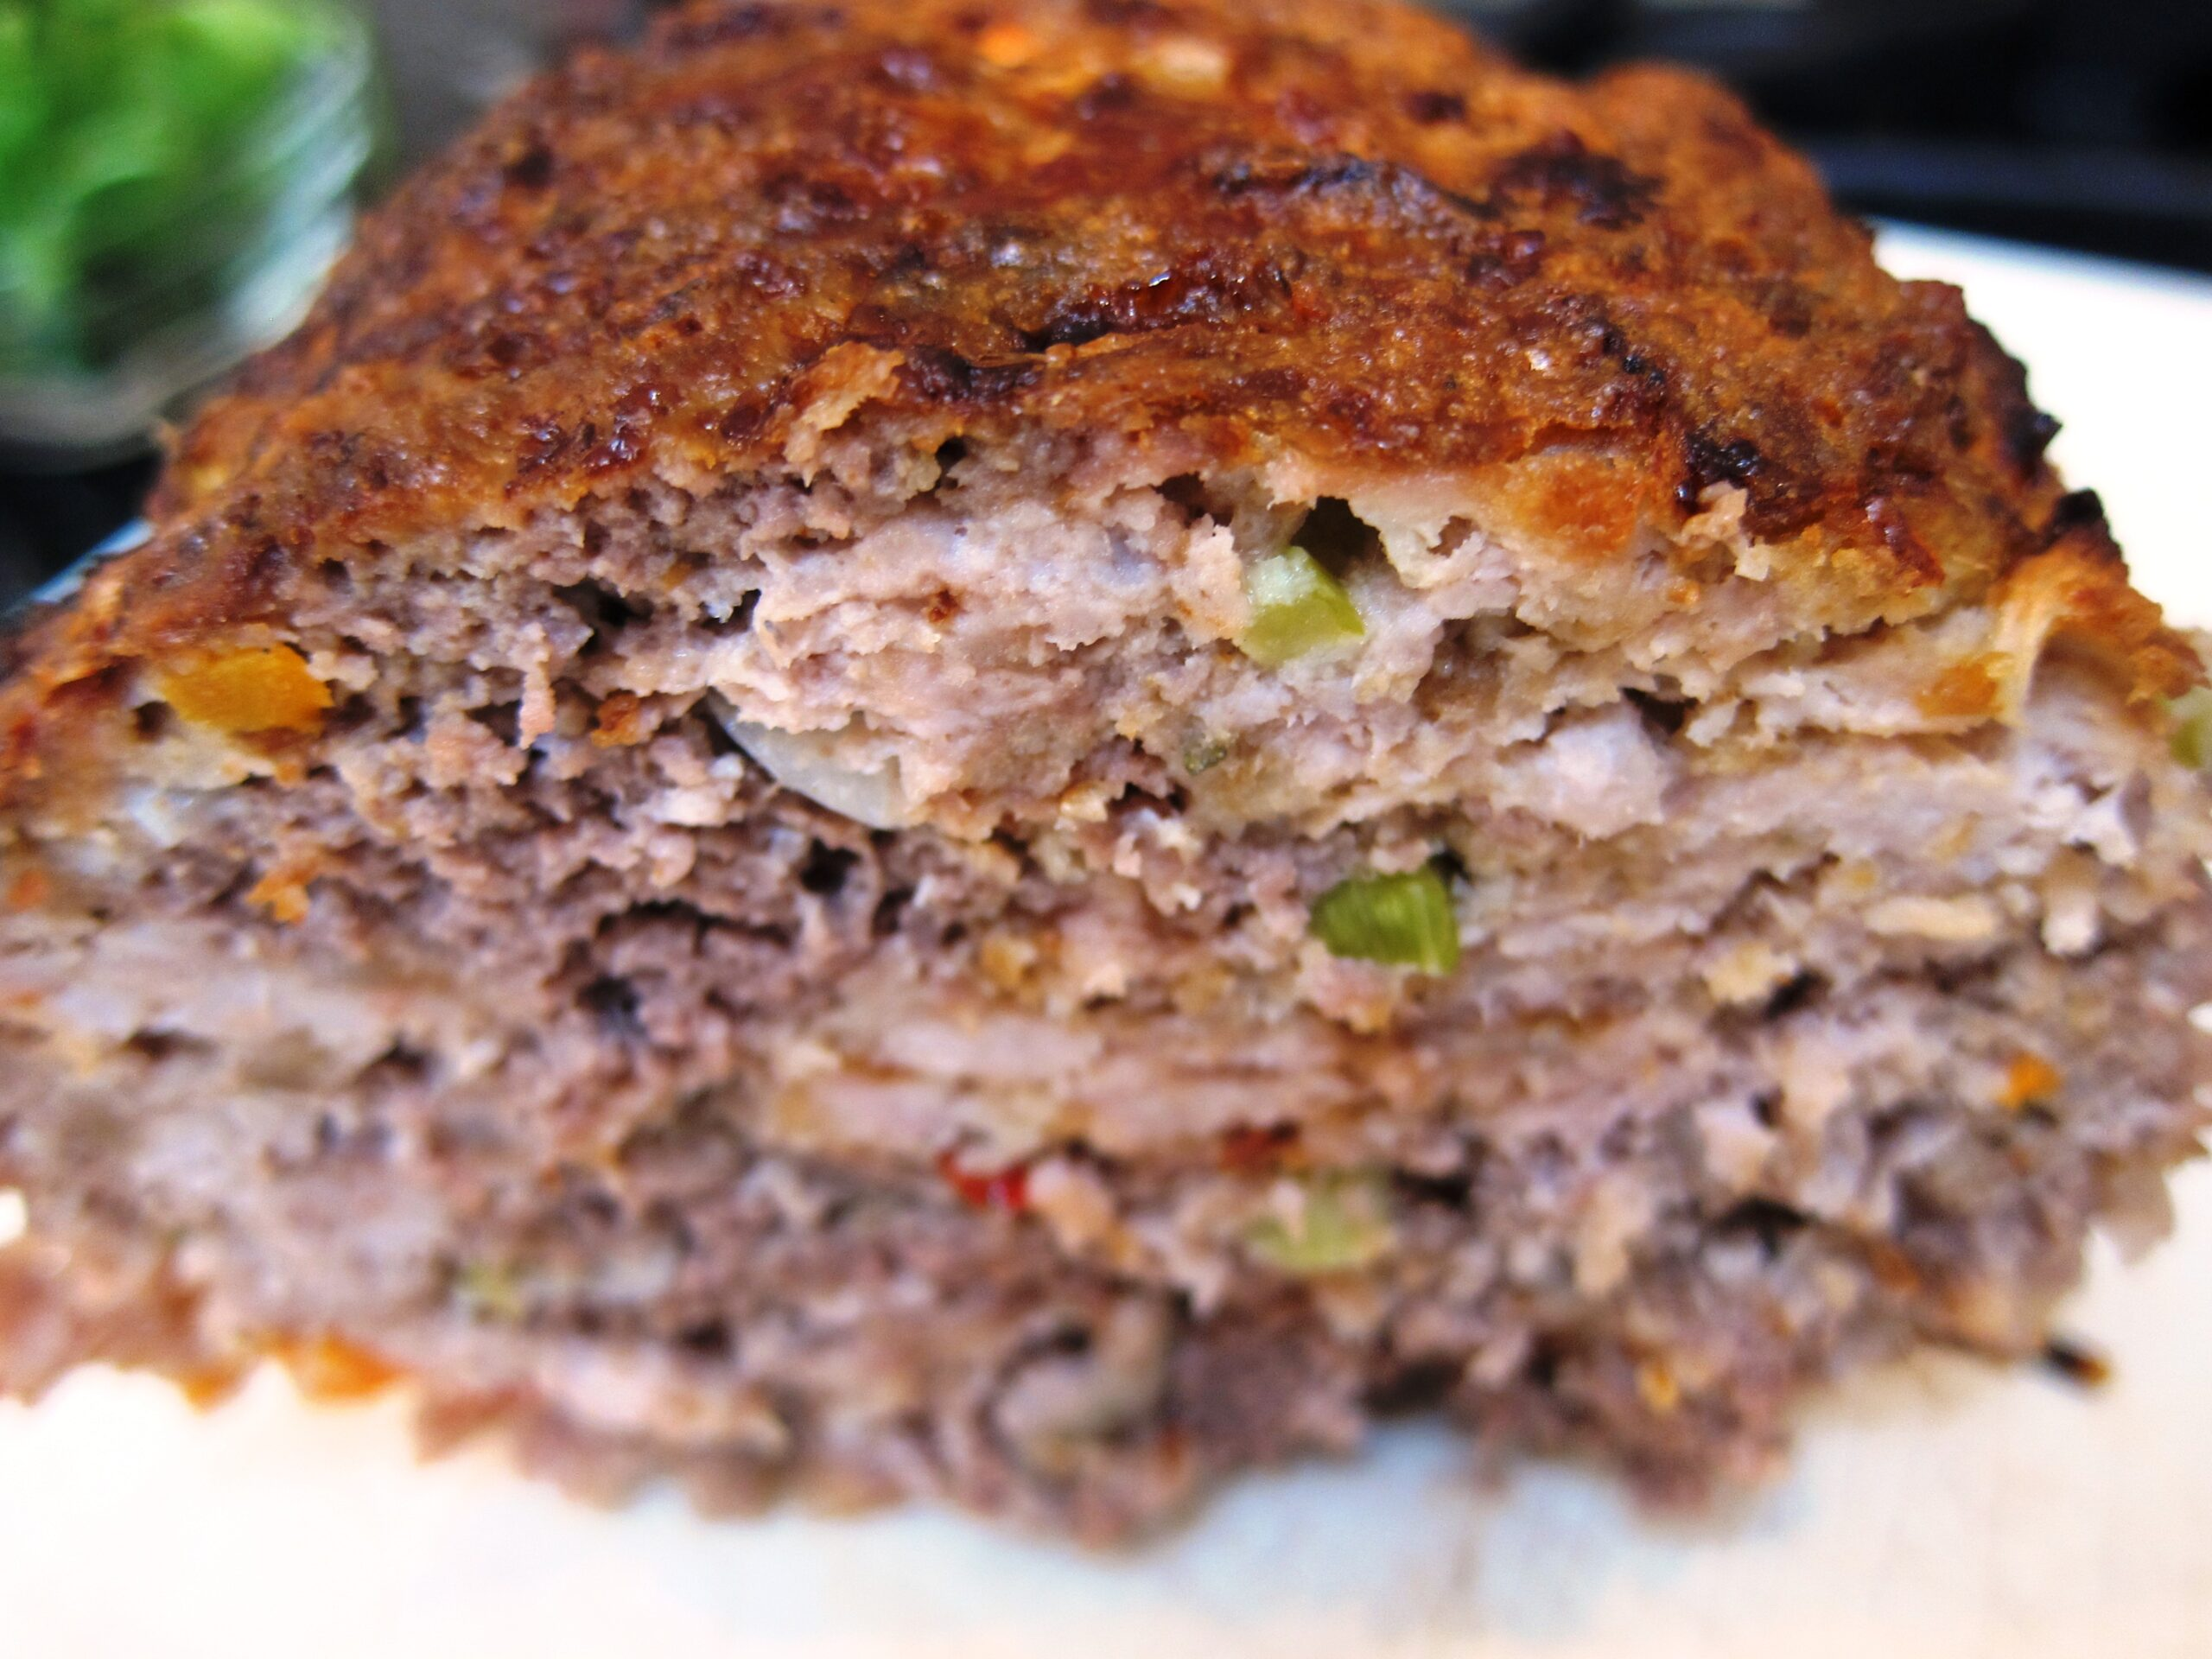 Bordeaux Wine and Meatloaf, Perfect Comfort Food Pairing